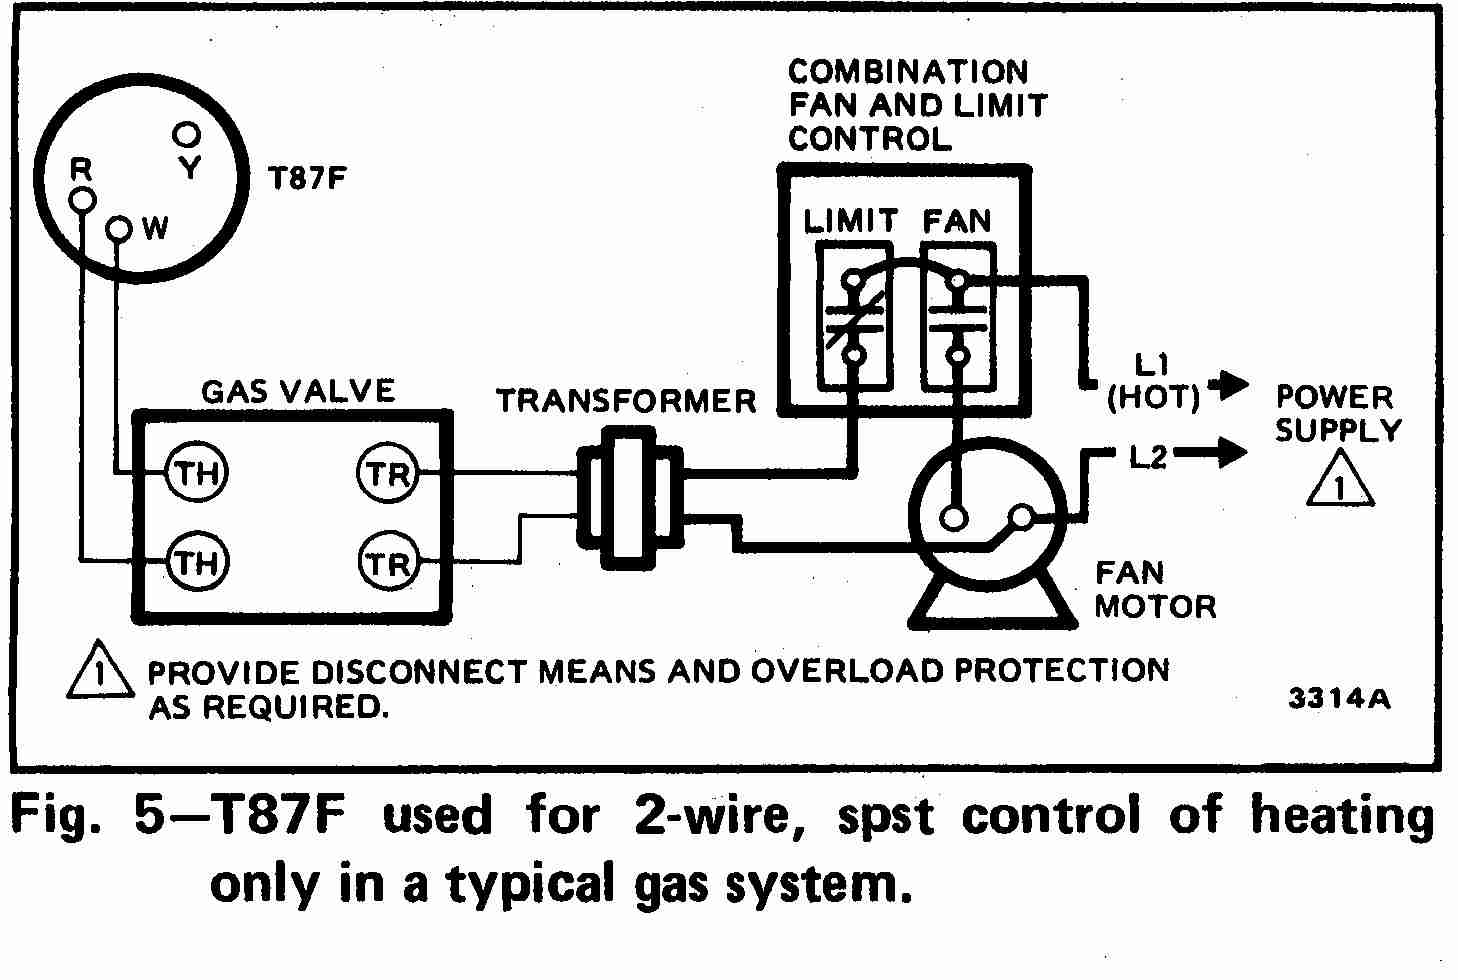 Thermostat Diagrams moreover Generac Gp7500e Wiring Diagram in addition Wiring Diagram Ac Split together with 7db2w Just Replaced Lennox Surelight 12l6901 Controller Board as well Amana Ptac Wiring Diagram. on york heat pump thermostat wiring